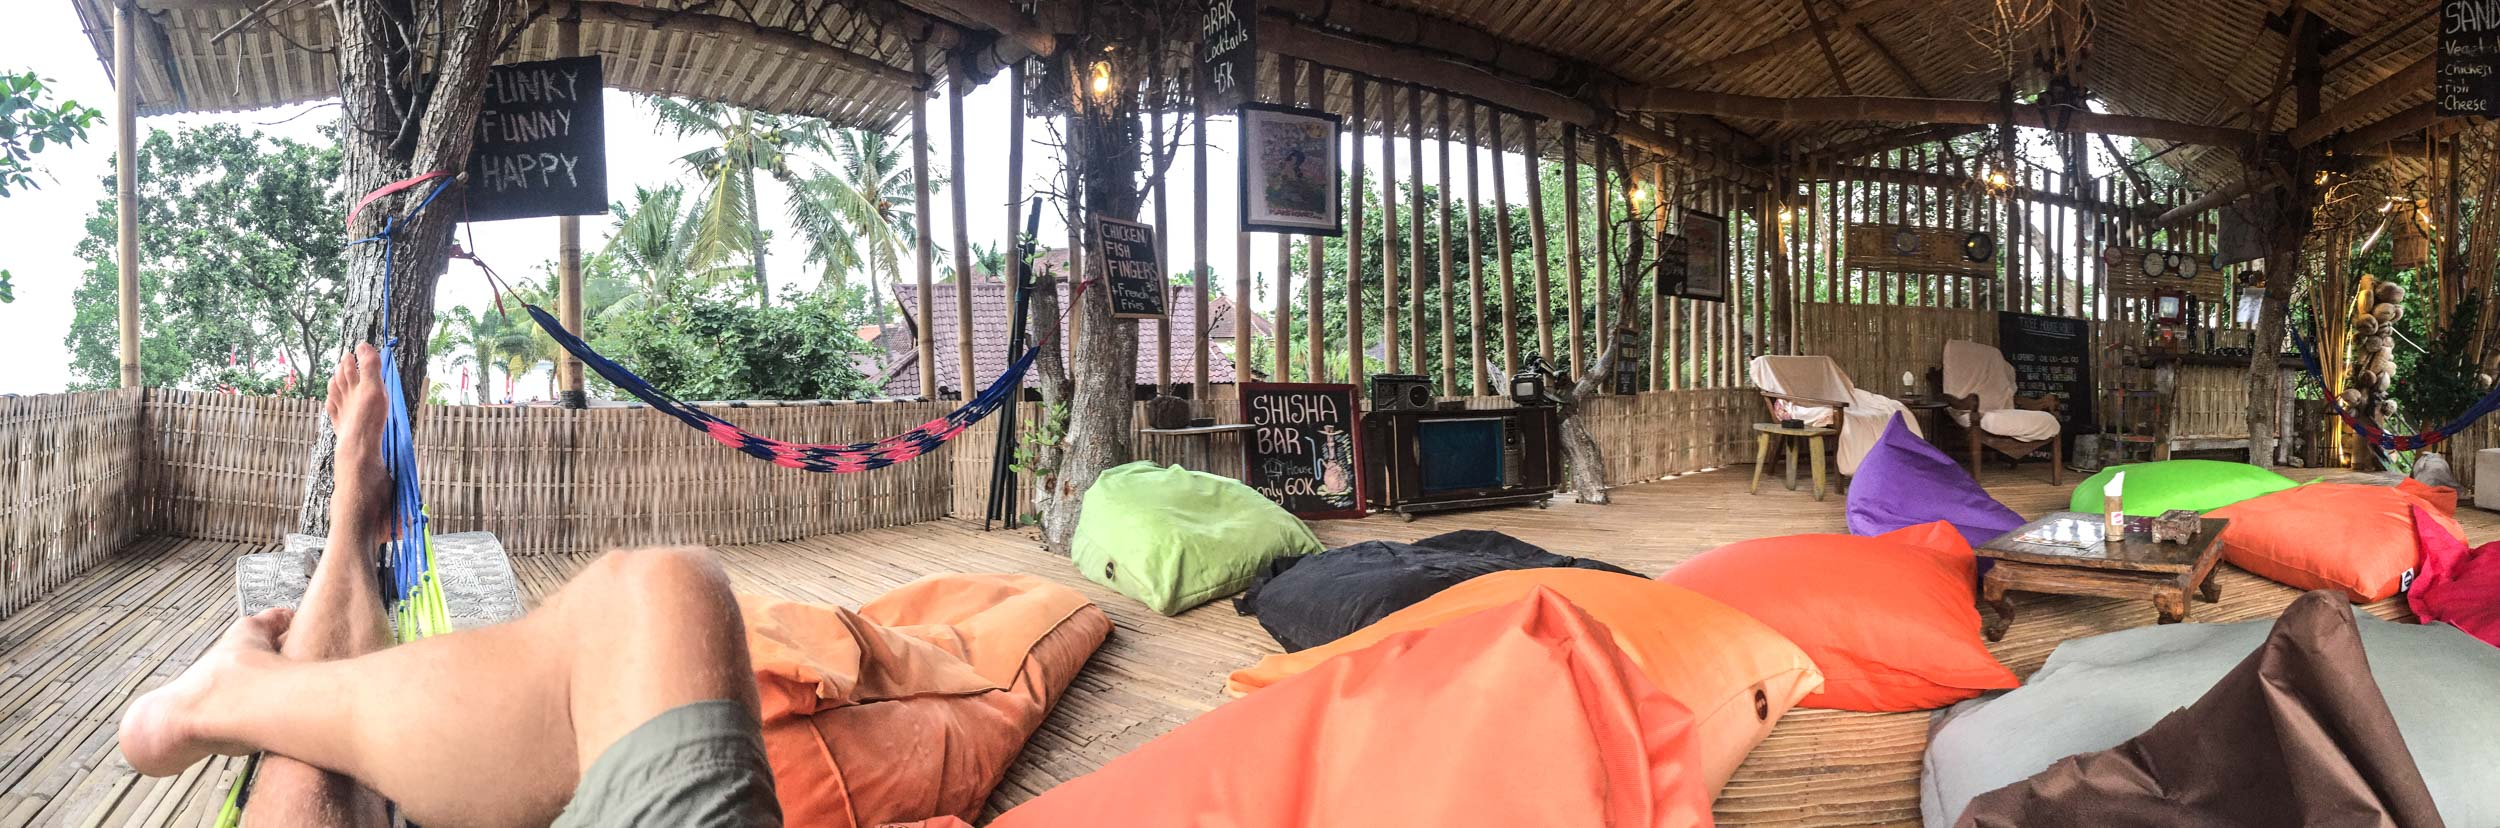 The chill out area at The Funky Place Hostel.... All to myself....